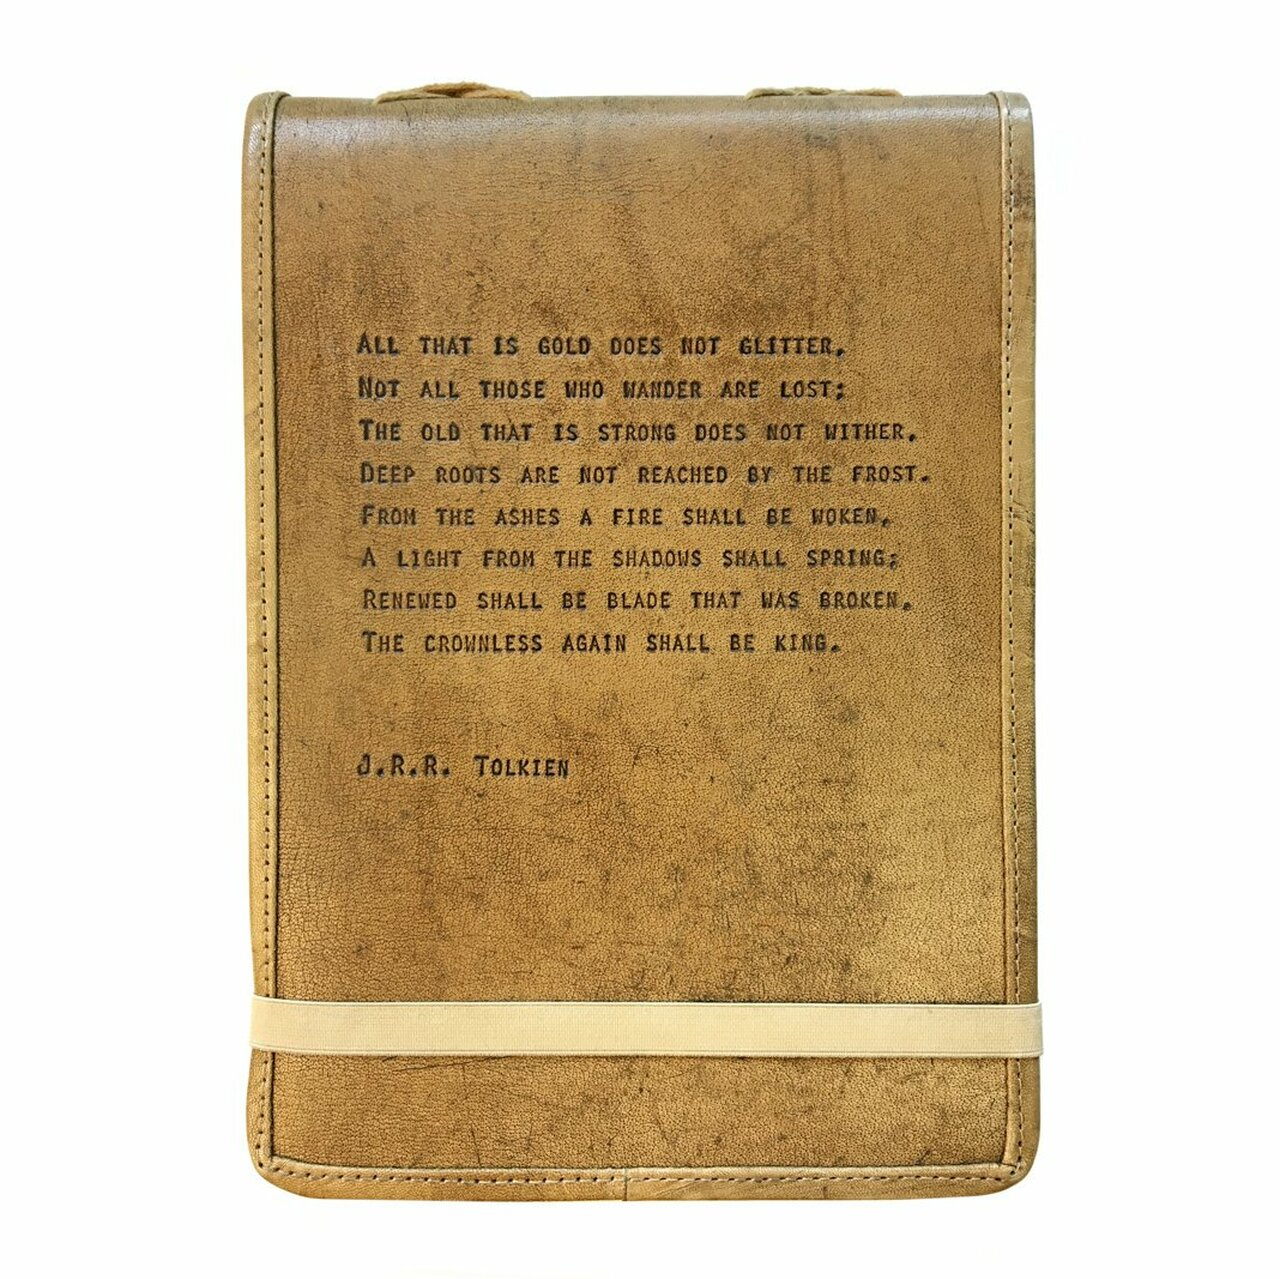 leather journal - all that is gold